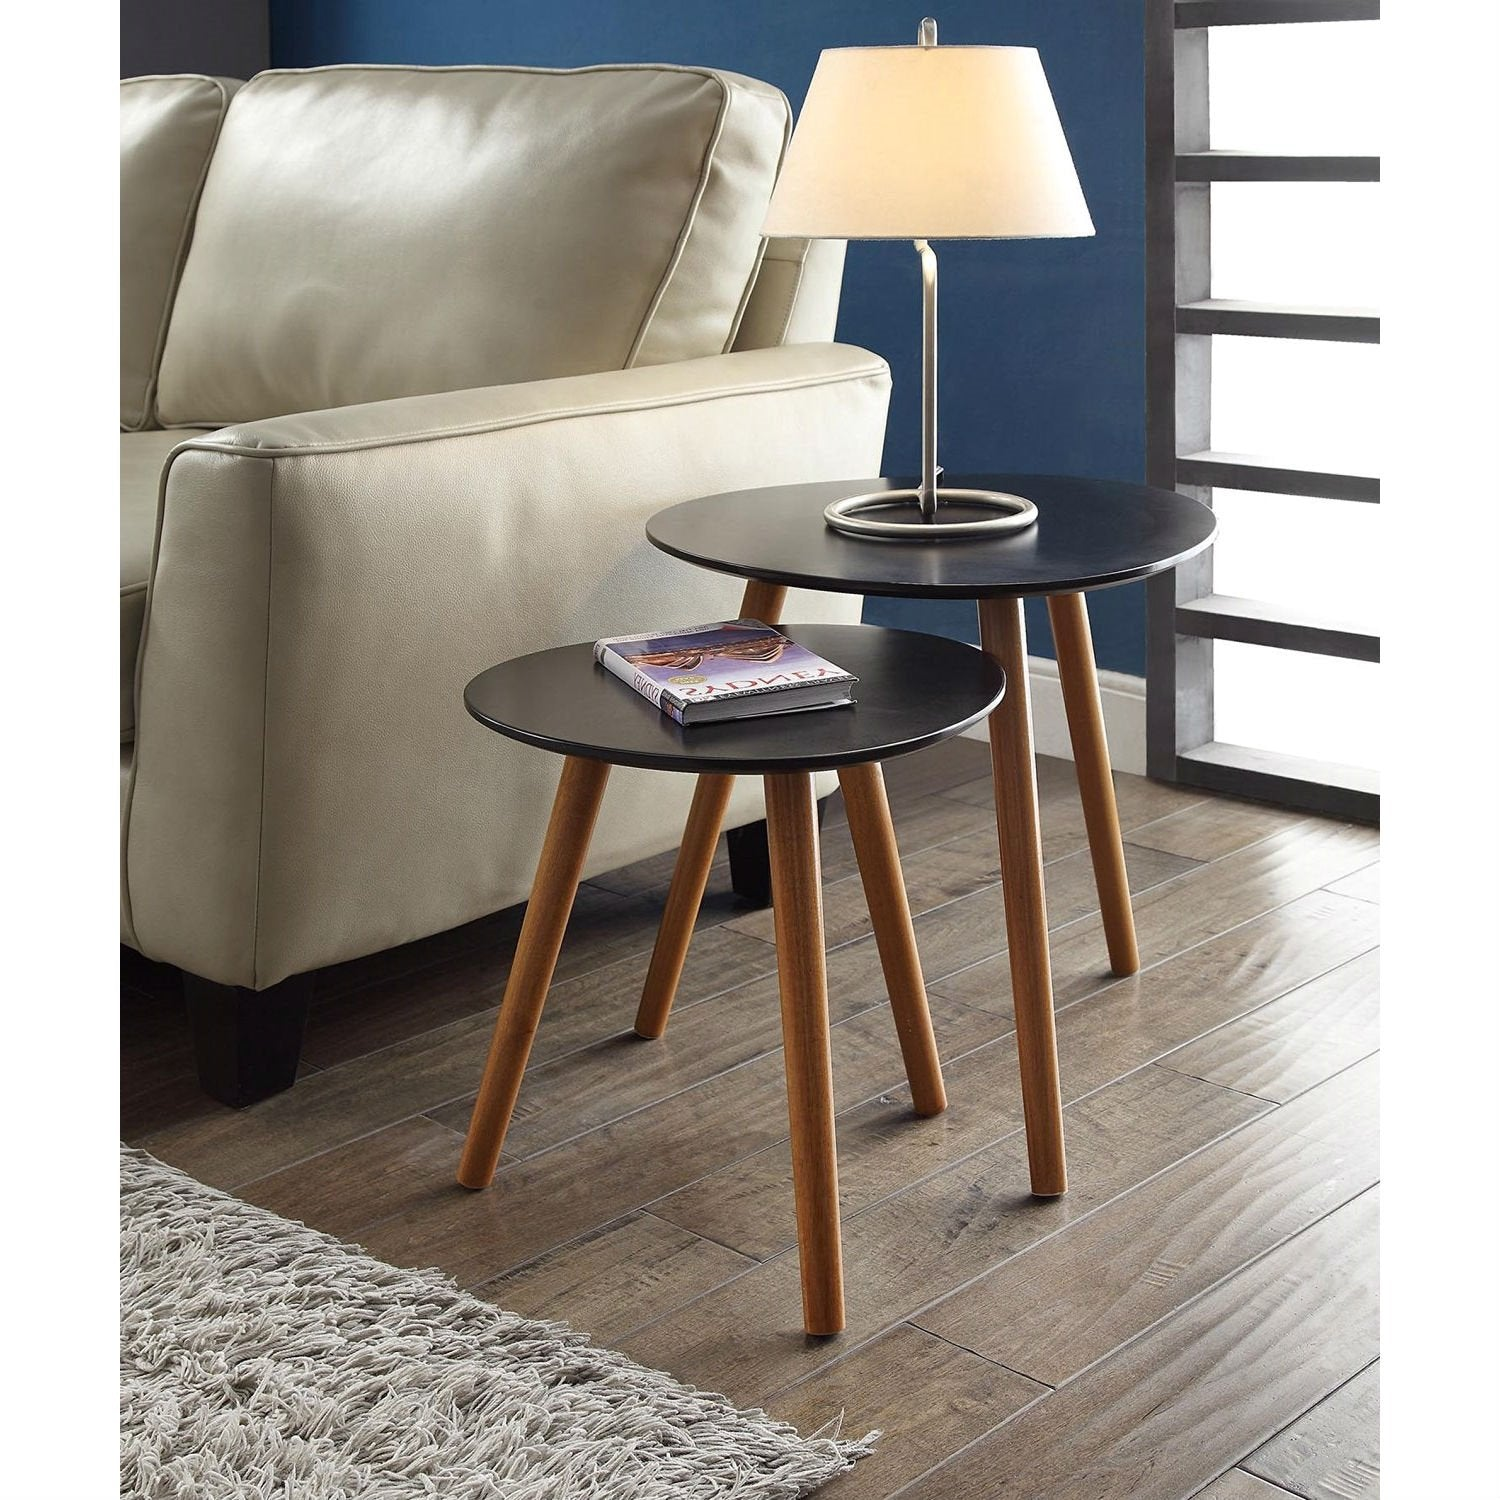 Set of 2 - Modern Mid-Century Style Nesting Tables End Table in Black